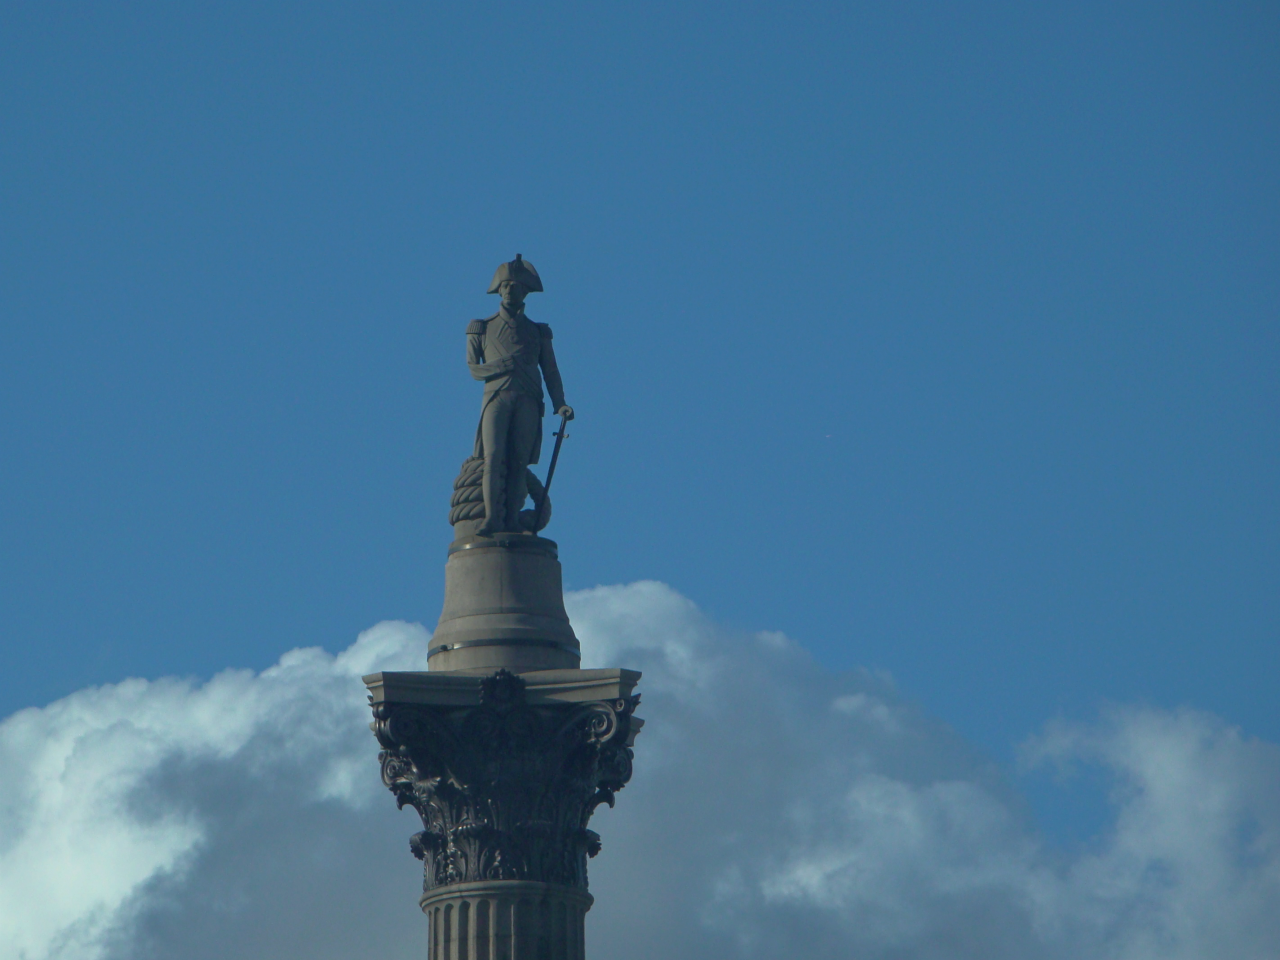 Nelson's Column, Trafalgar Square, London, photographed on 13 September 2017